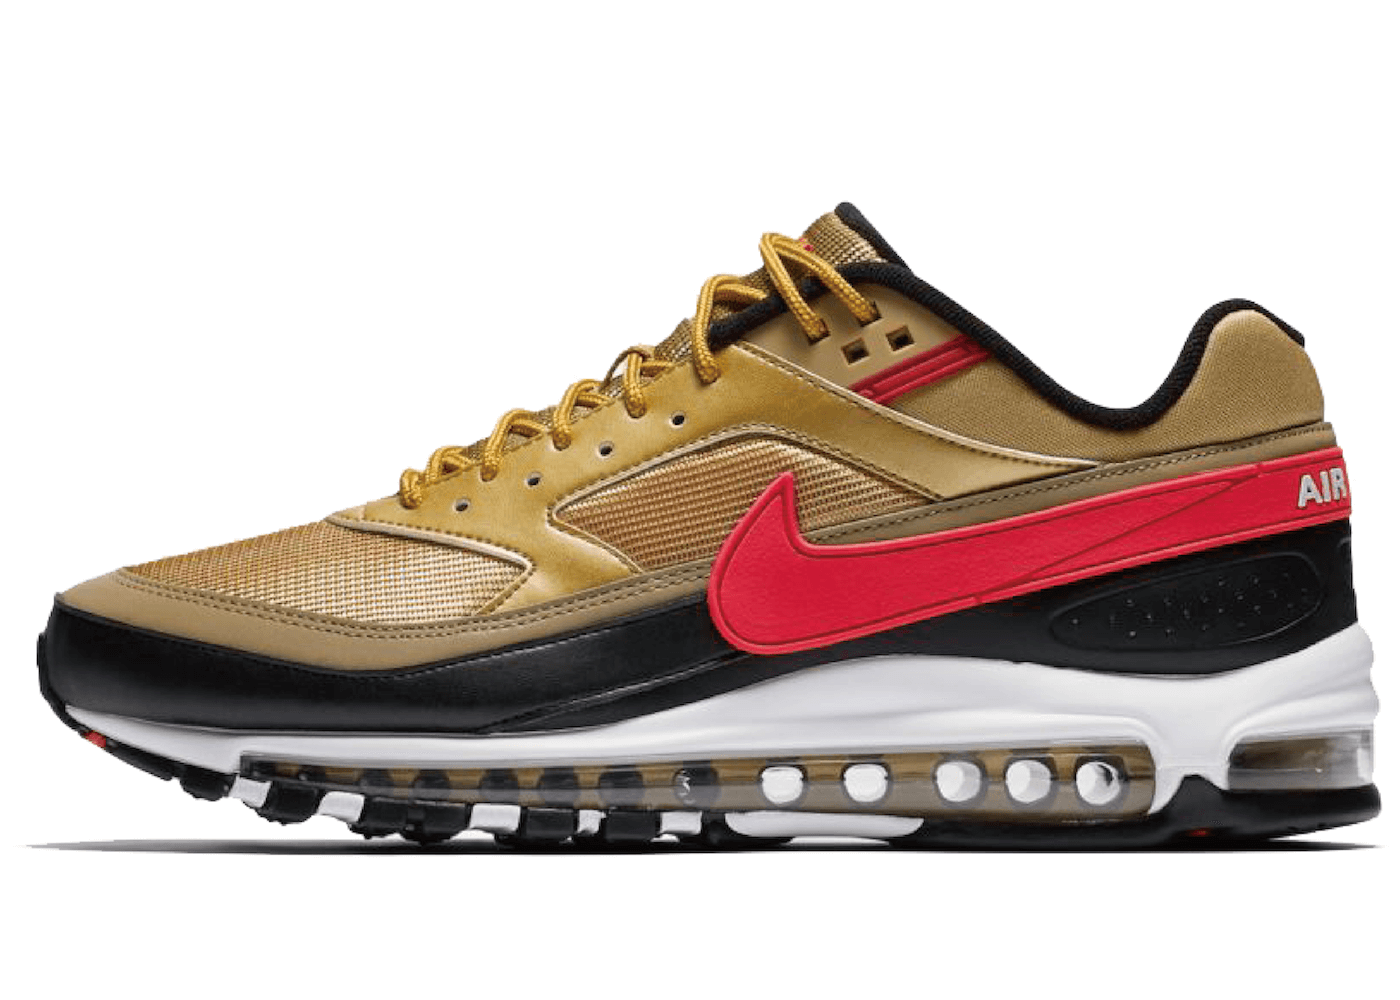 Nike Air Max 97 BW Metallic Gold University Red Blackの写真